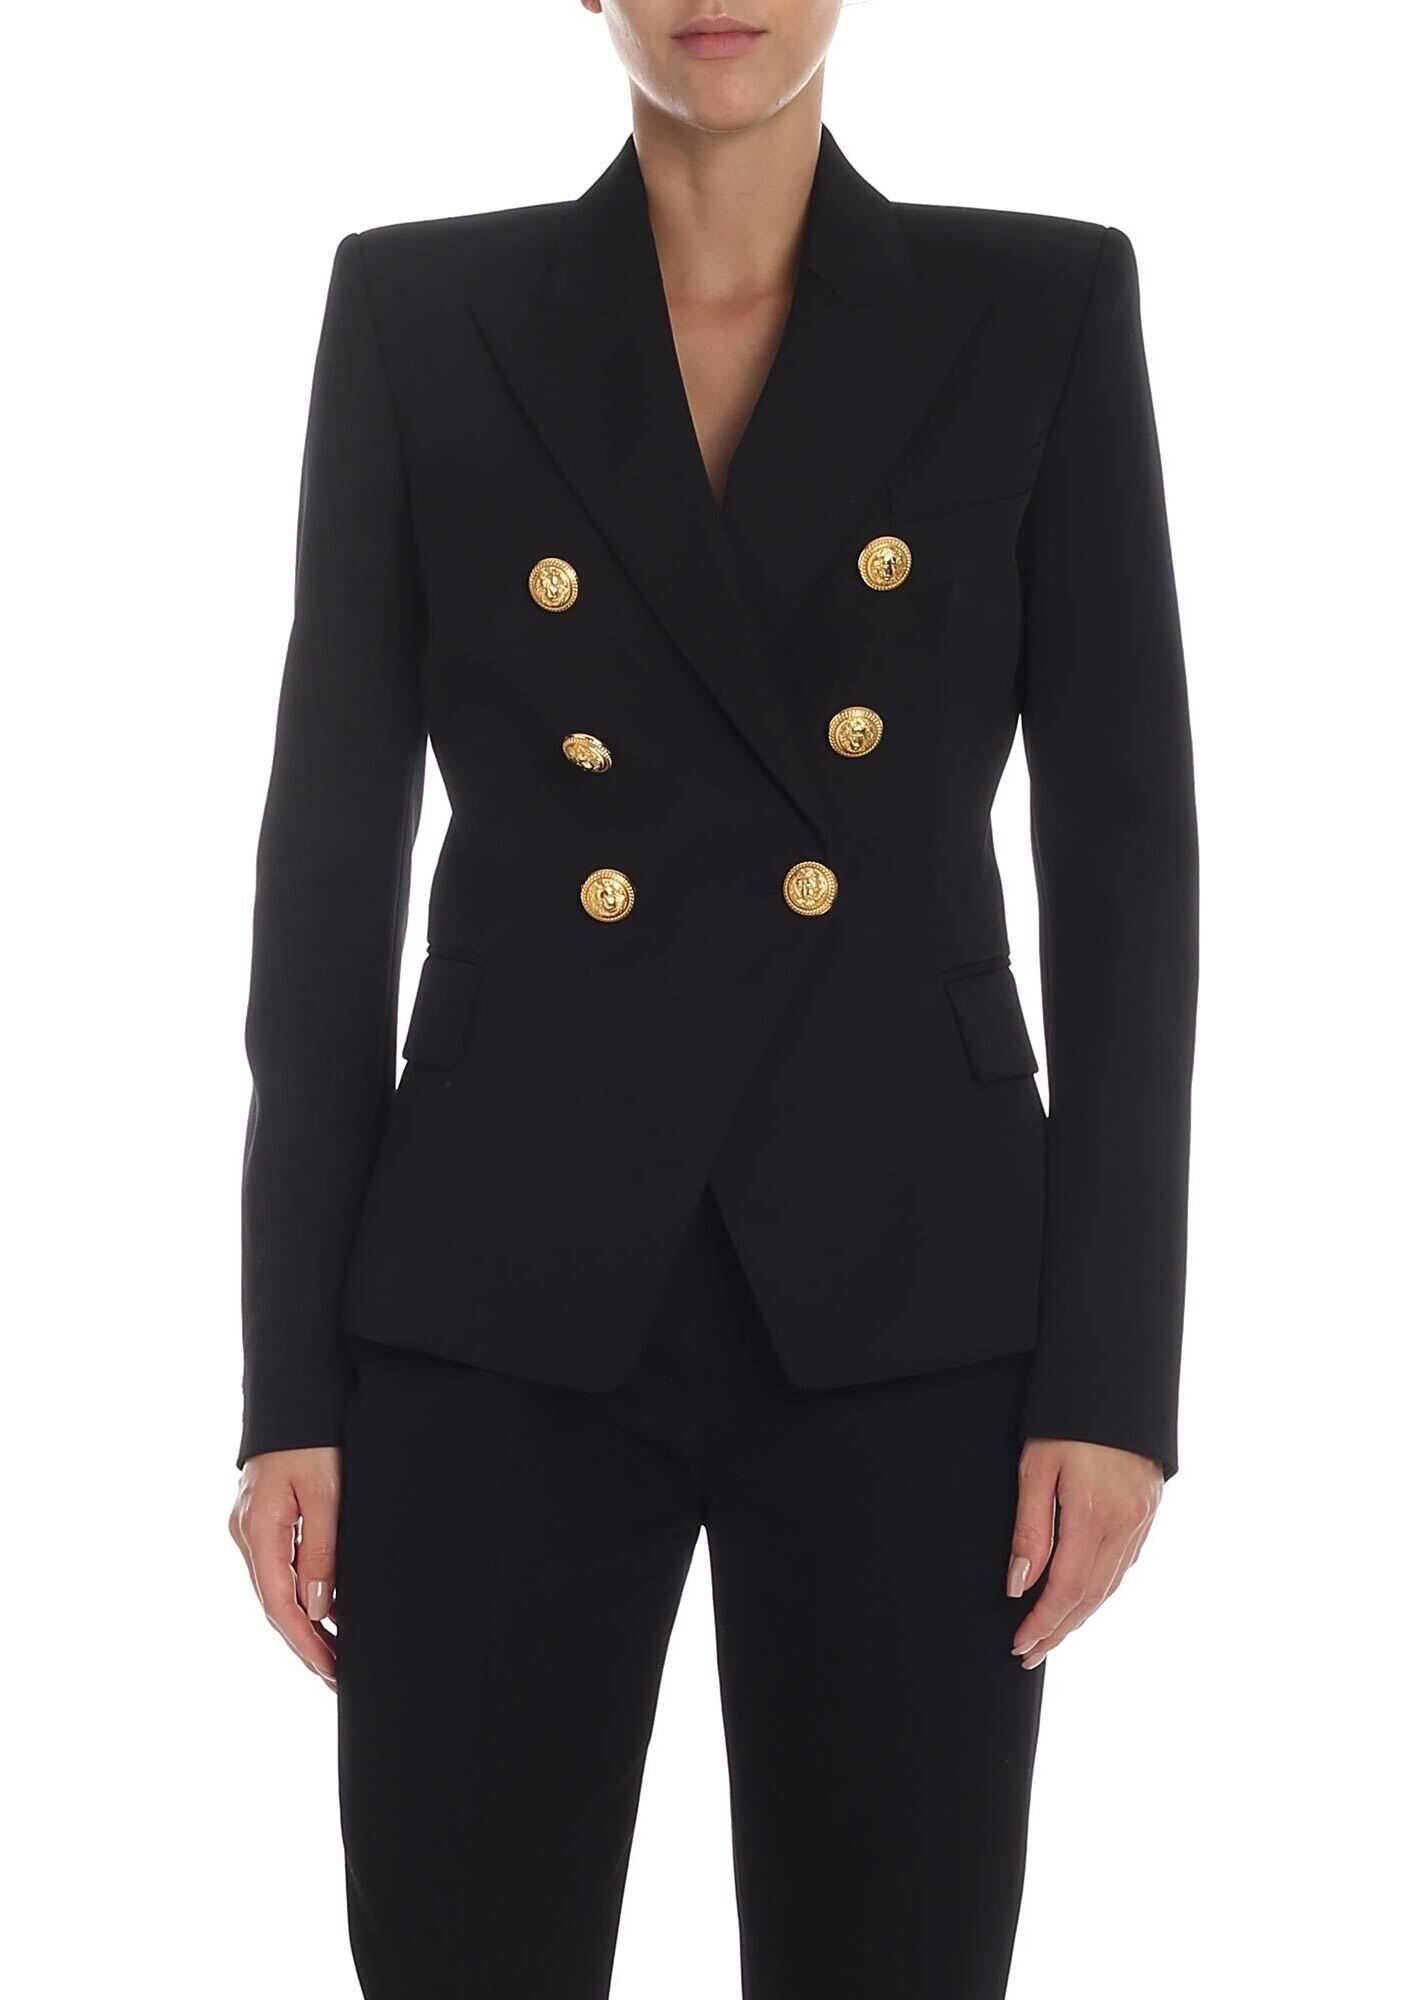 Balmain Black Double-Breasted Jacket With Golden Buttons Black